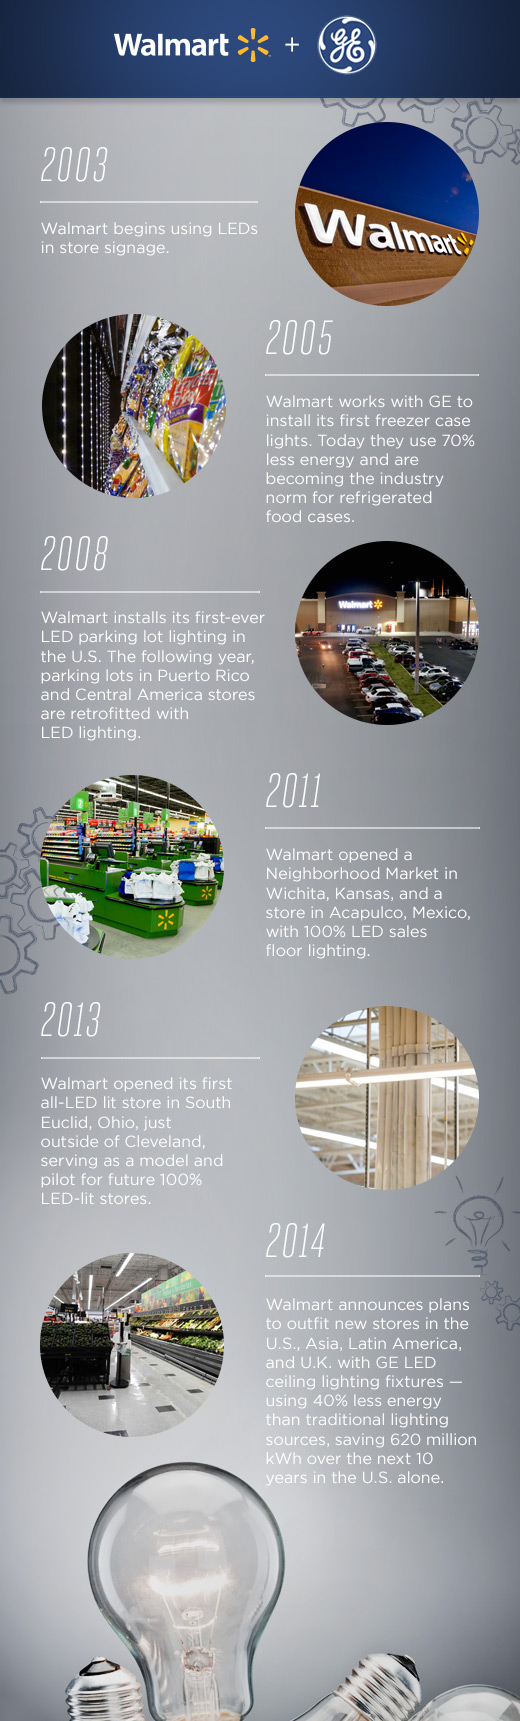 GE LED Lighting Partnership Timeline Infographic